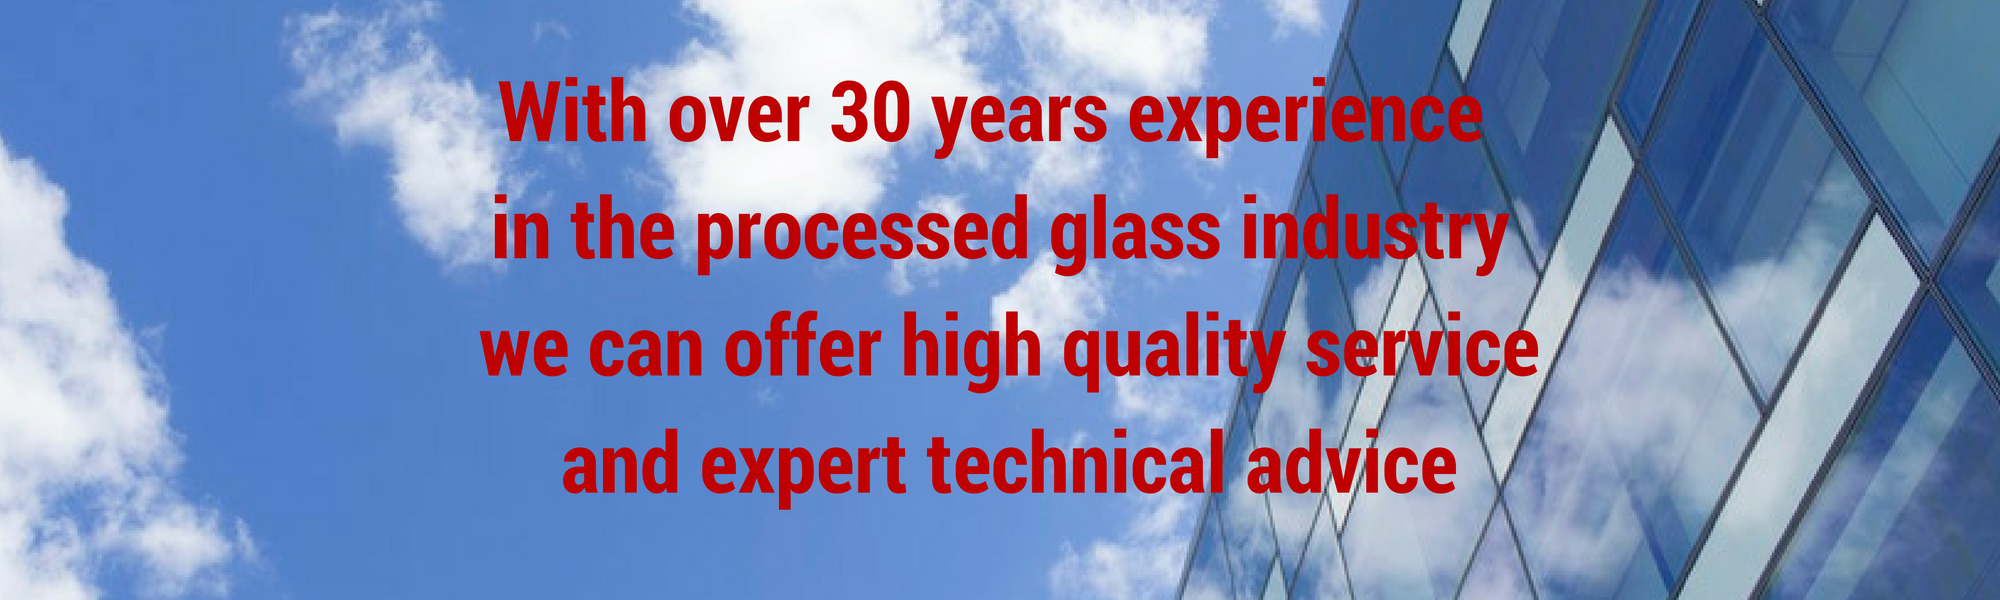 Ravensby Glass 30 years experience